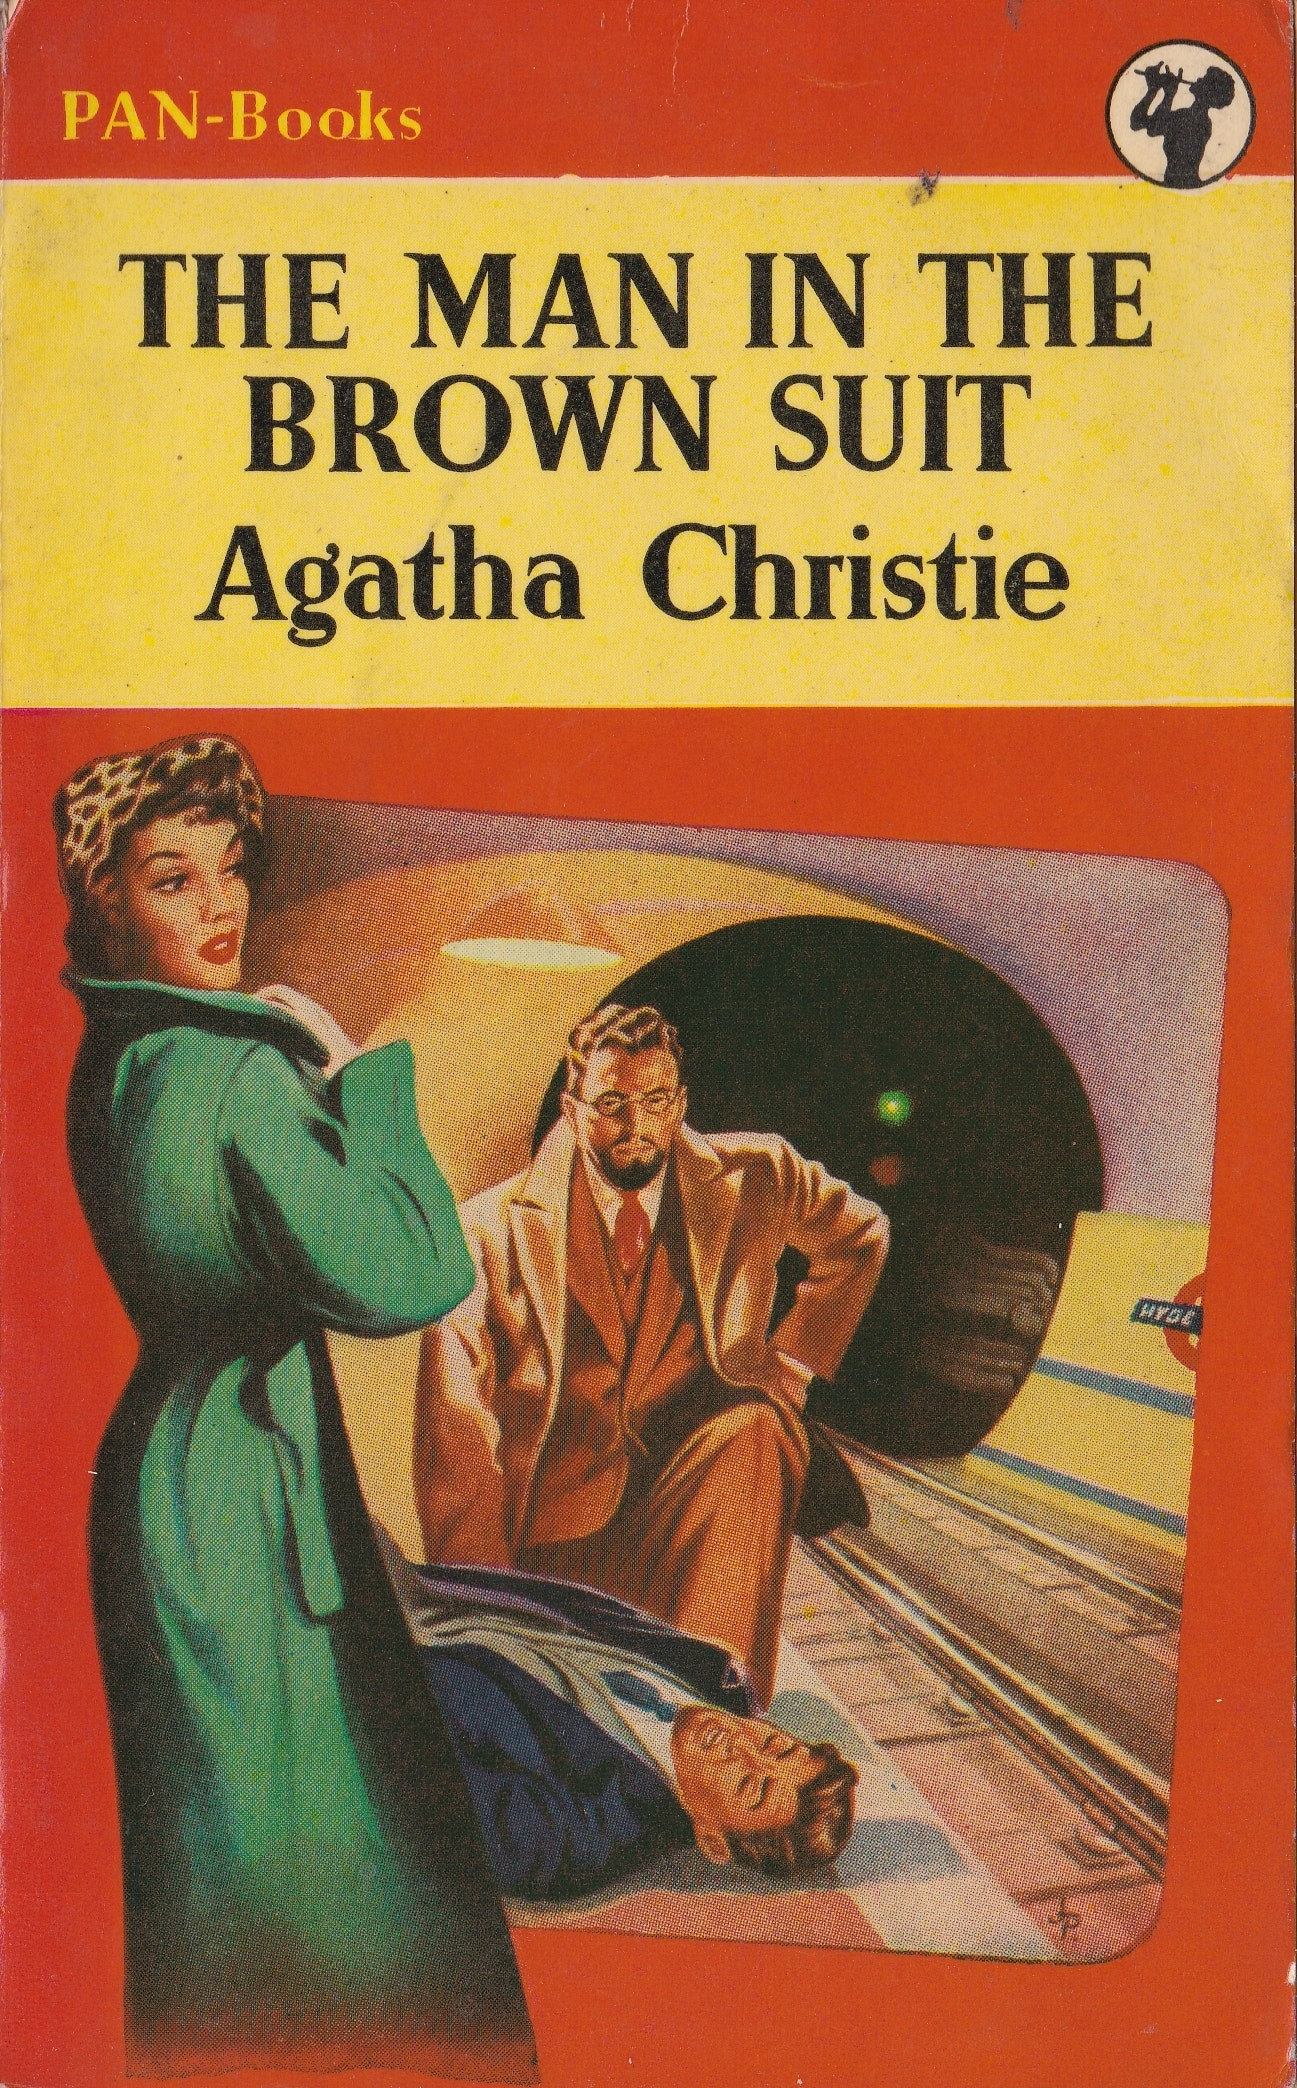 Agatha Christie The Man in the Brown Suit International Women's Day 2018